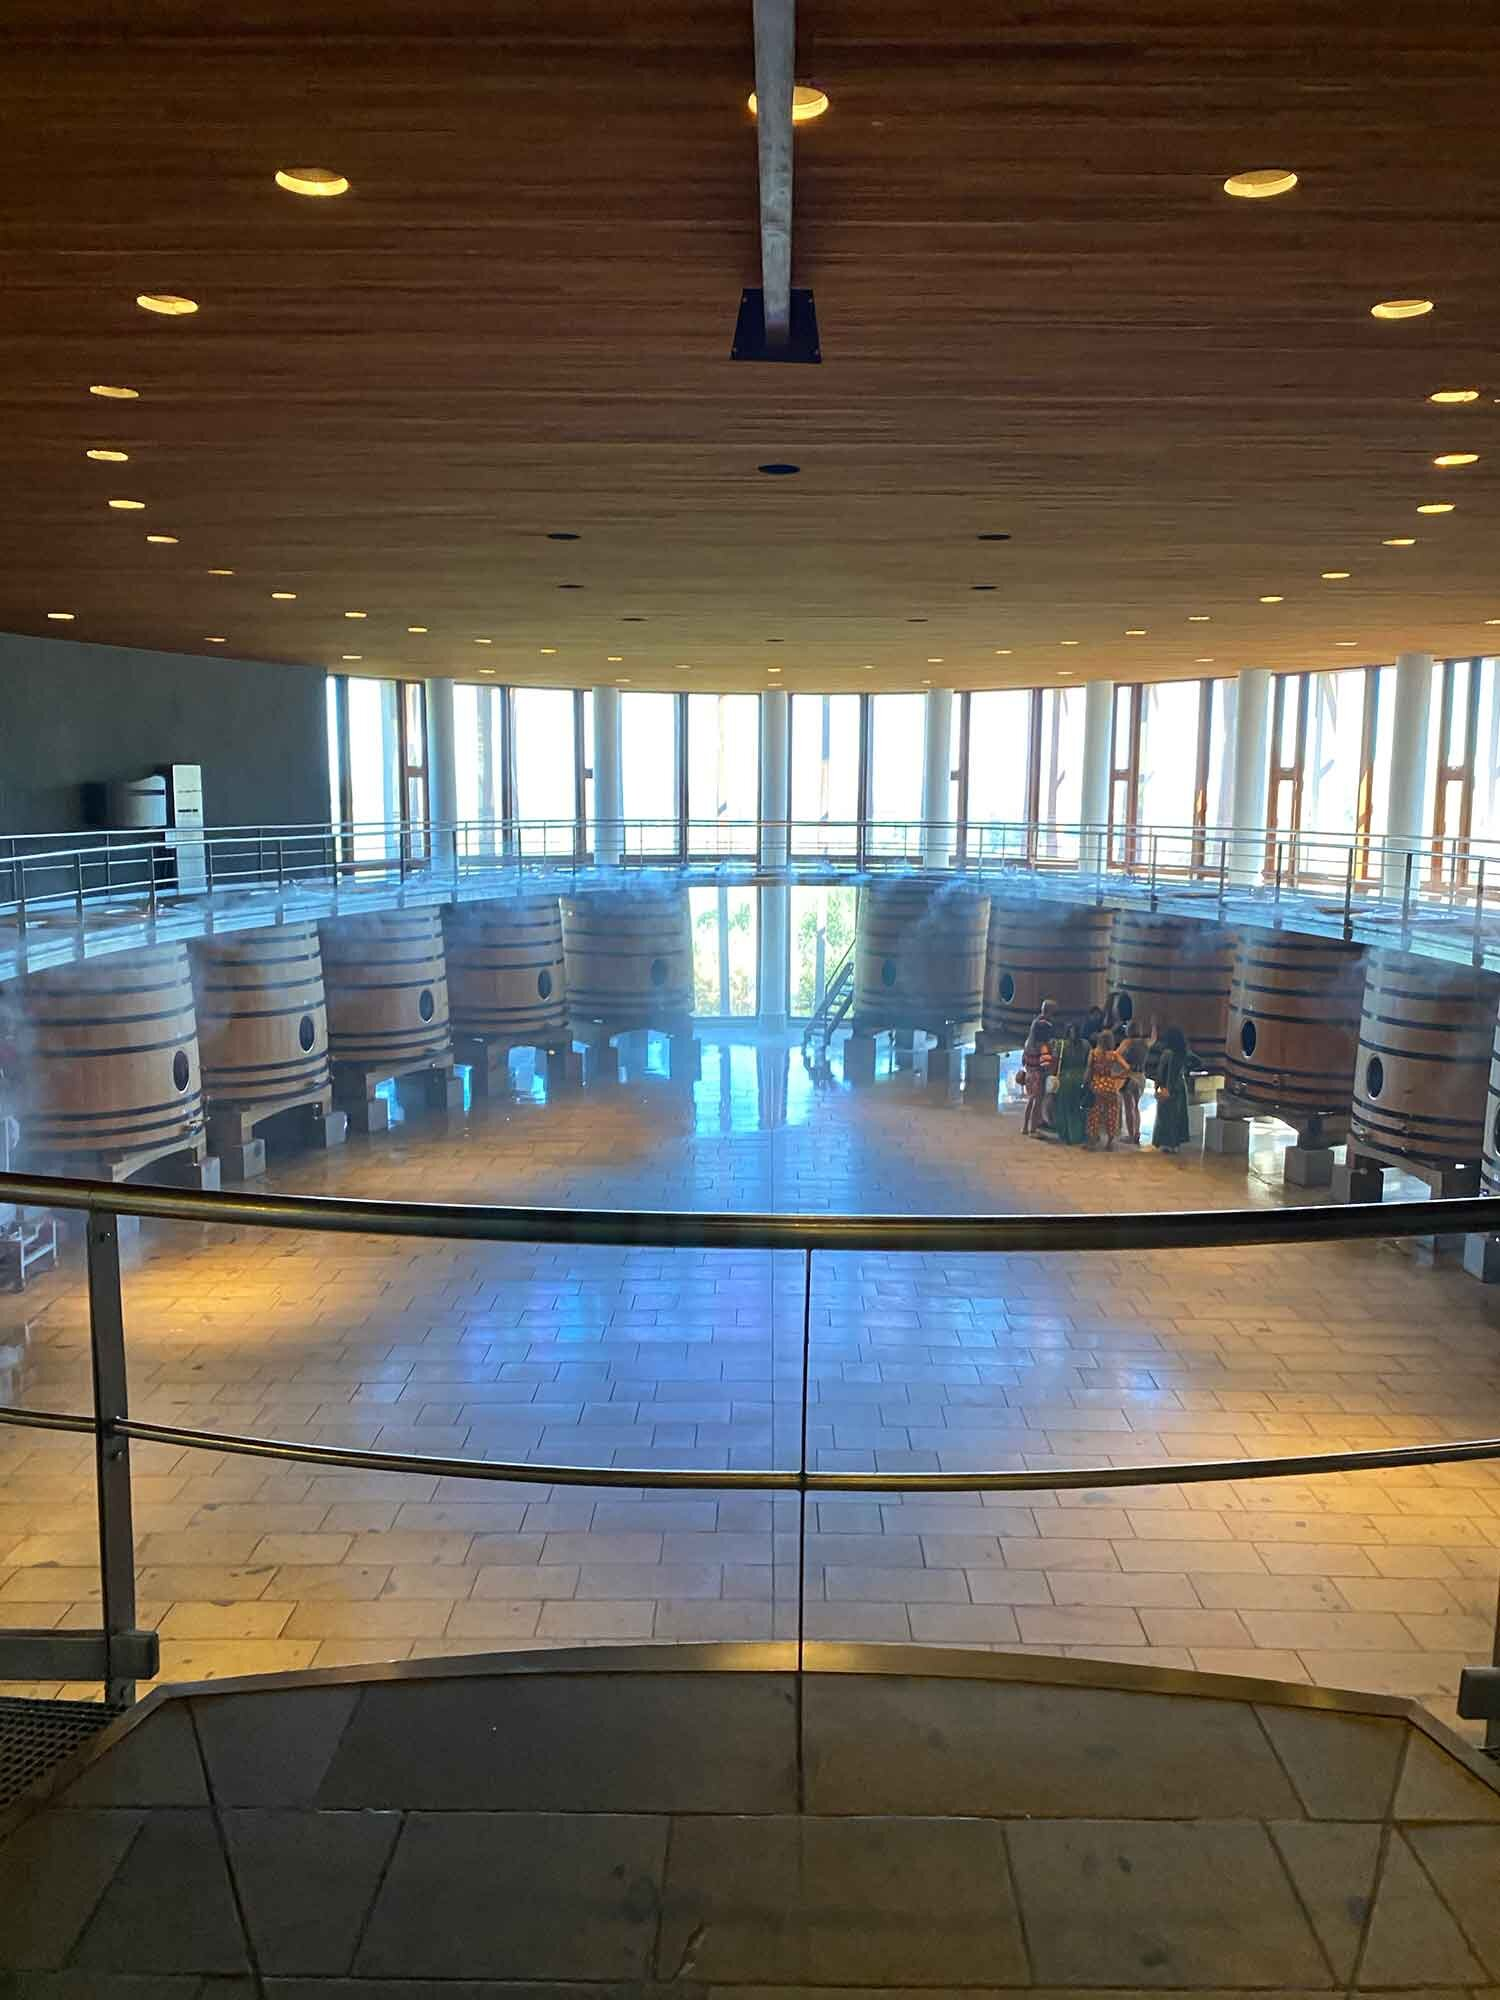 Clos Apalta / Lapostelle Winery Tour, Colchagua Valley, Chile